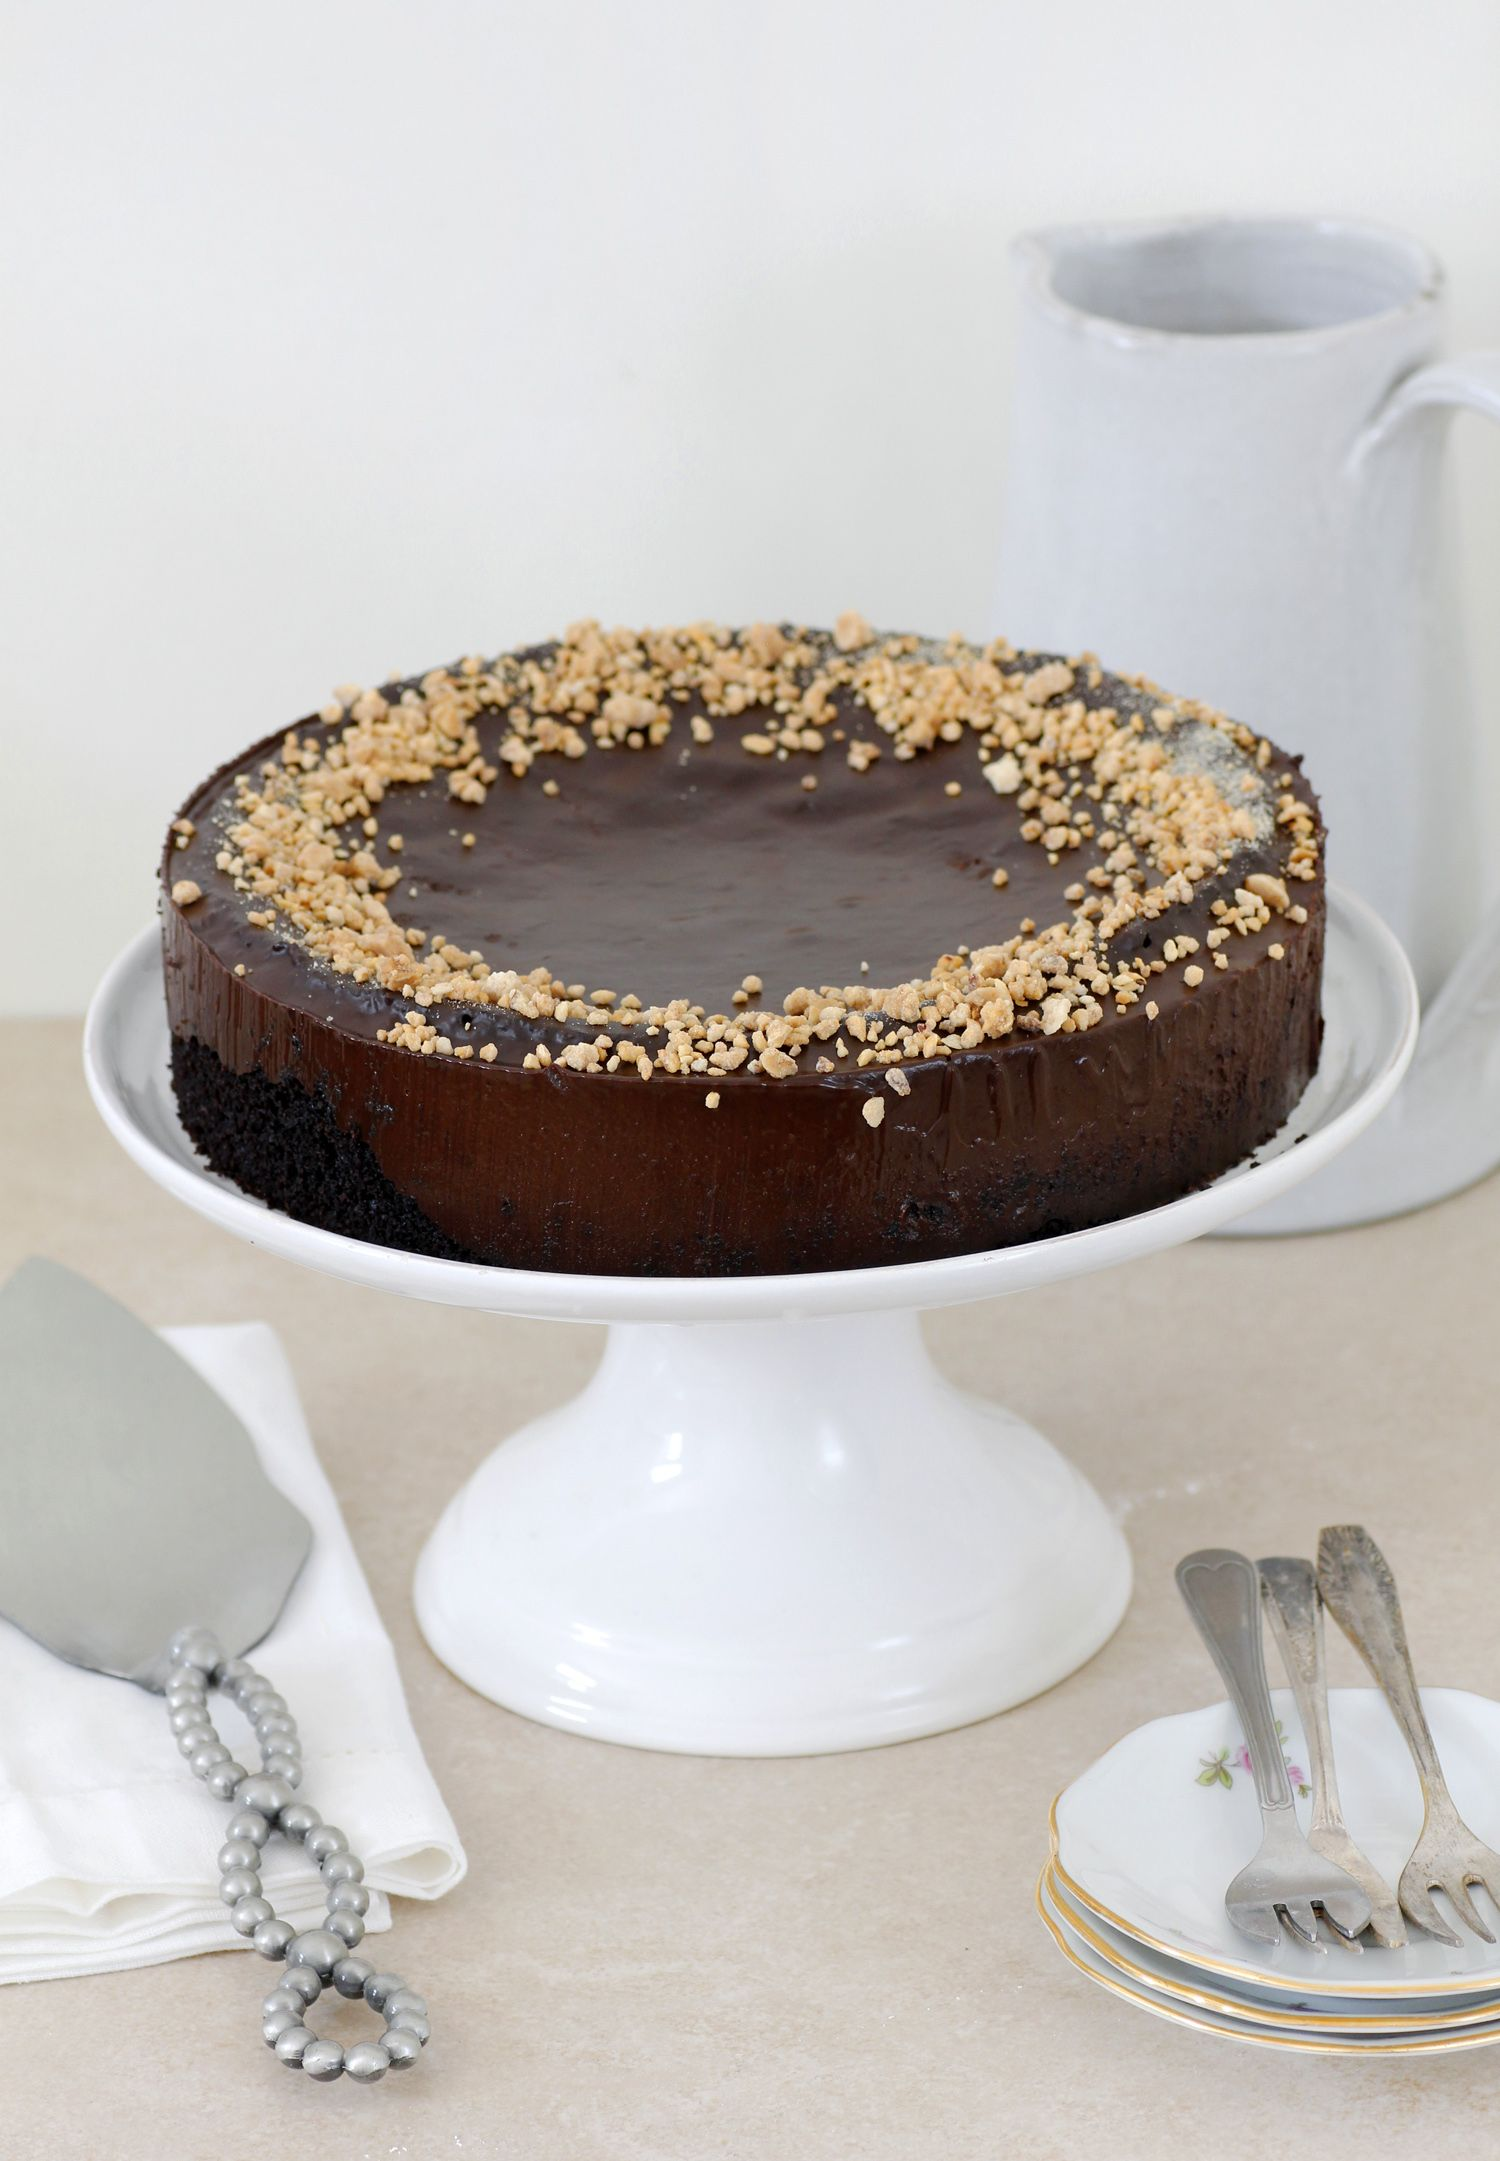 Chocolate Cake With Almond Meal And Olive Oil